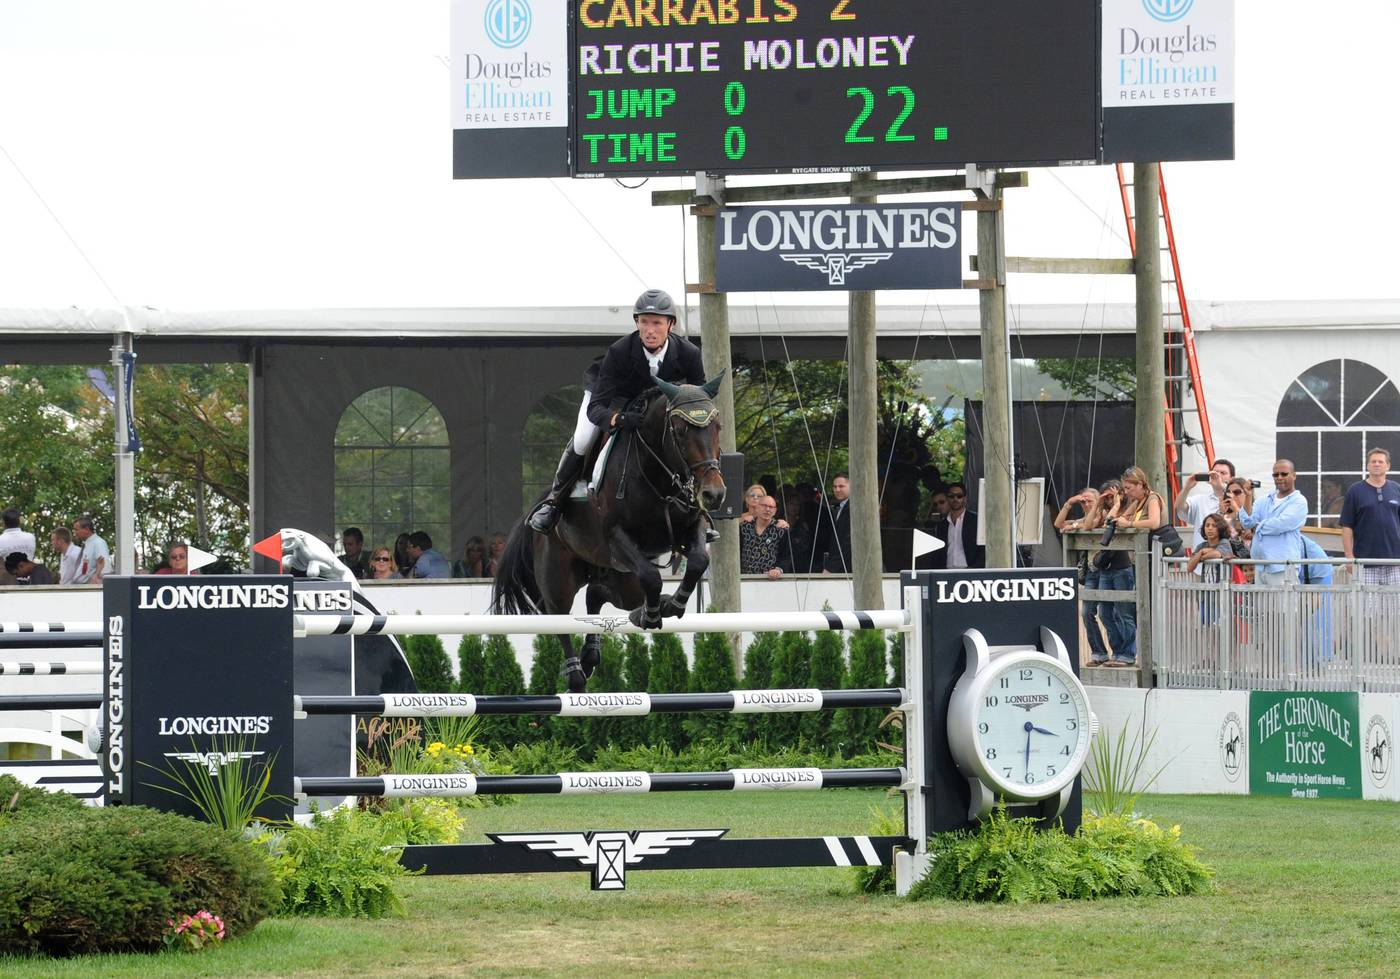 Longines Show Jumping Event: Longines expands commitment to equestrian sports through Hampton Classic Horse Show partnership 2